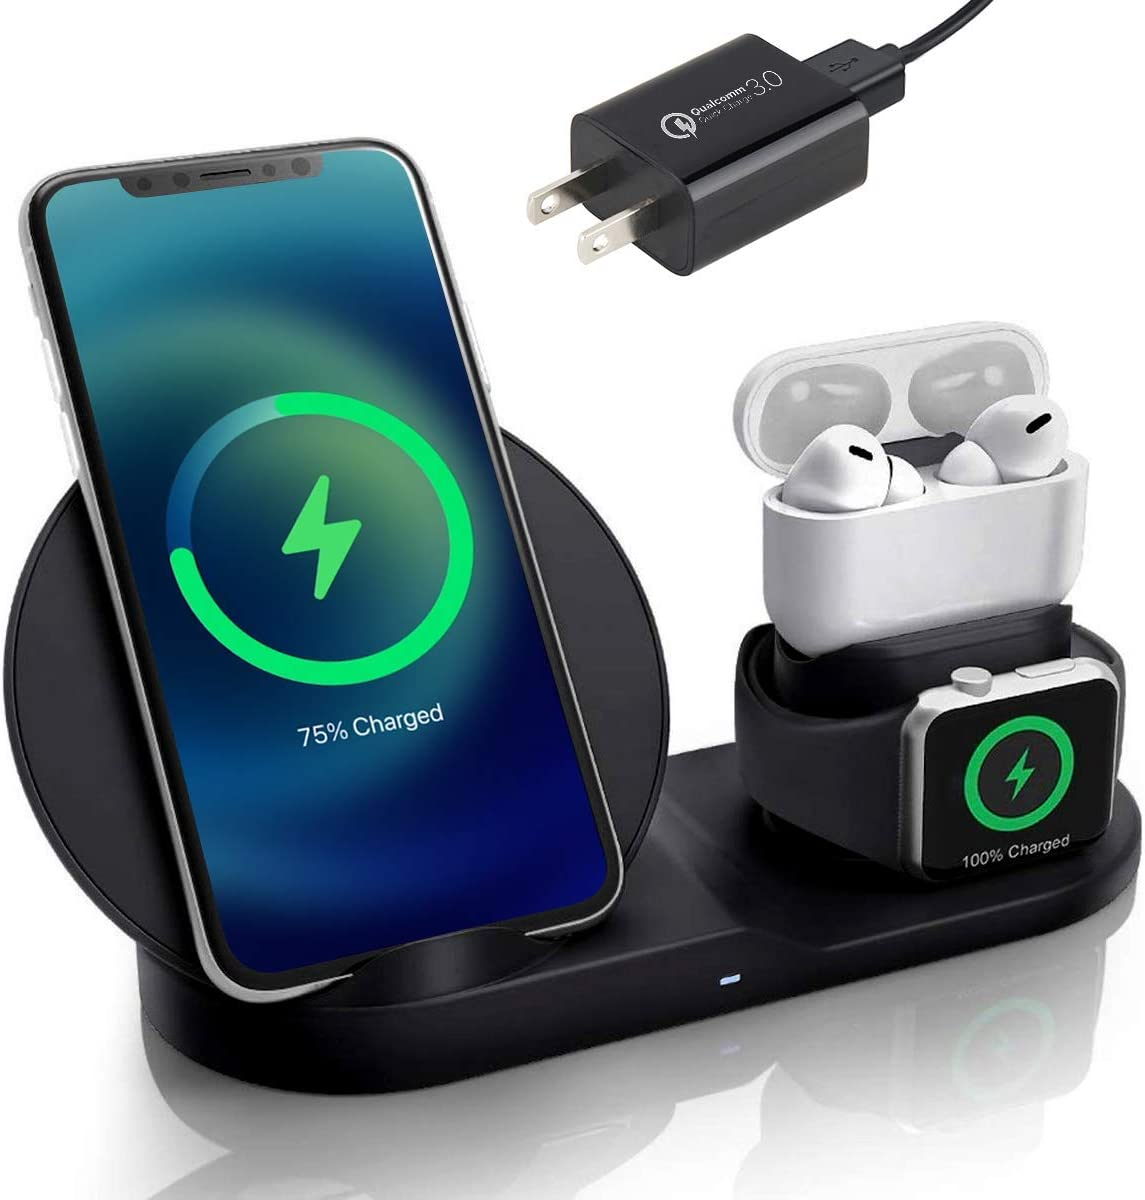 3 in 1 Wireless Charging Station for Phone, Watch & Headphones – Wireless Charger Compatible with Apple Products – Fast Wireless Charging